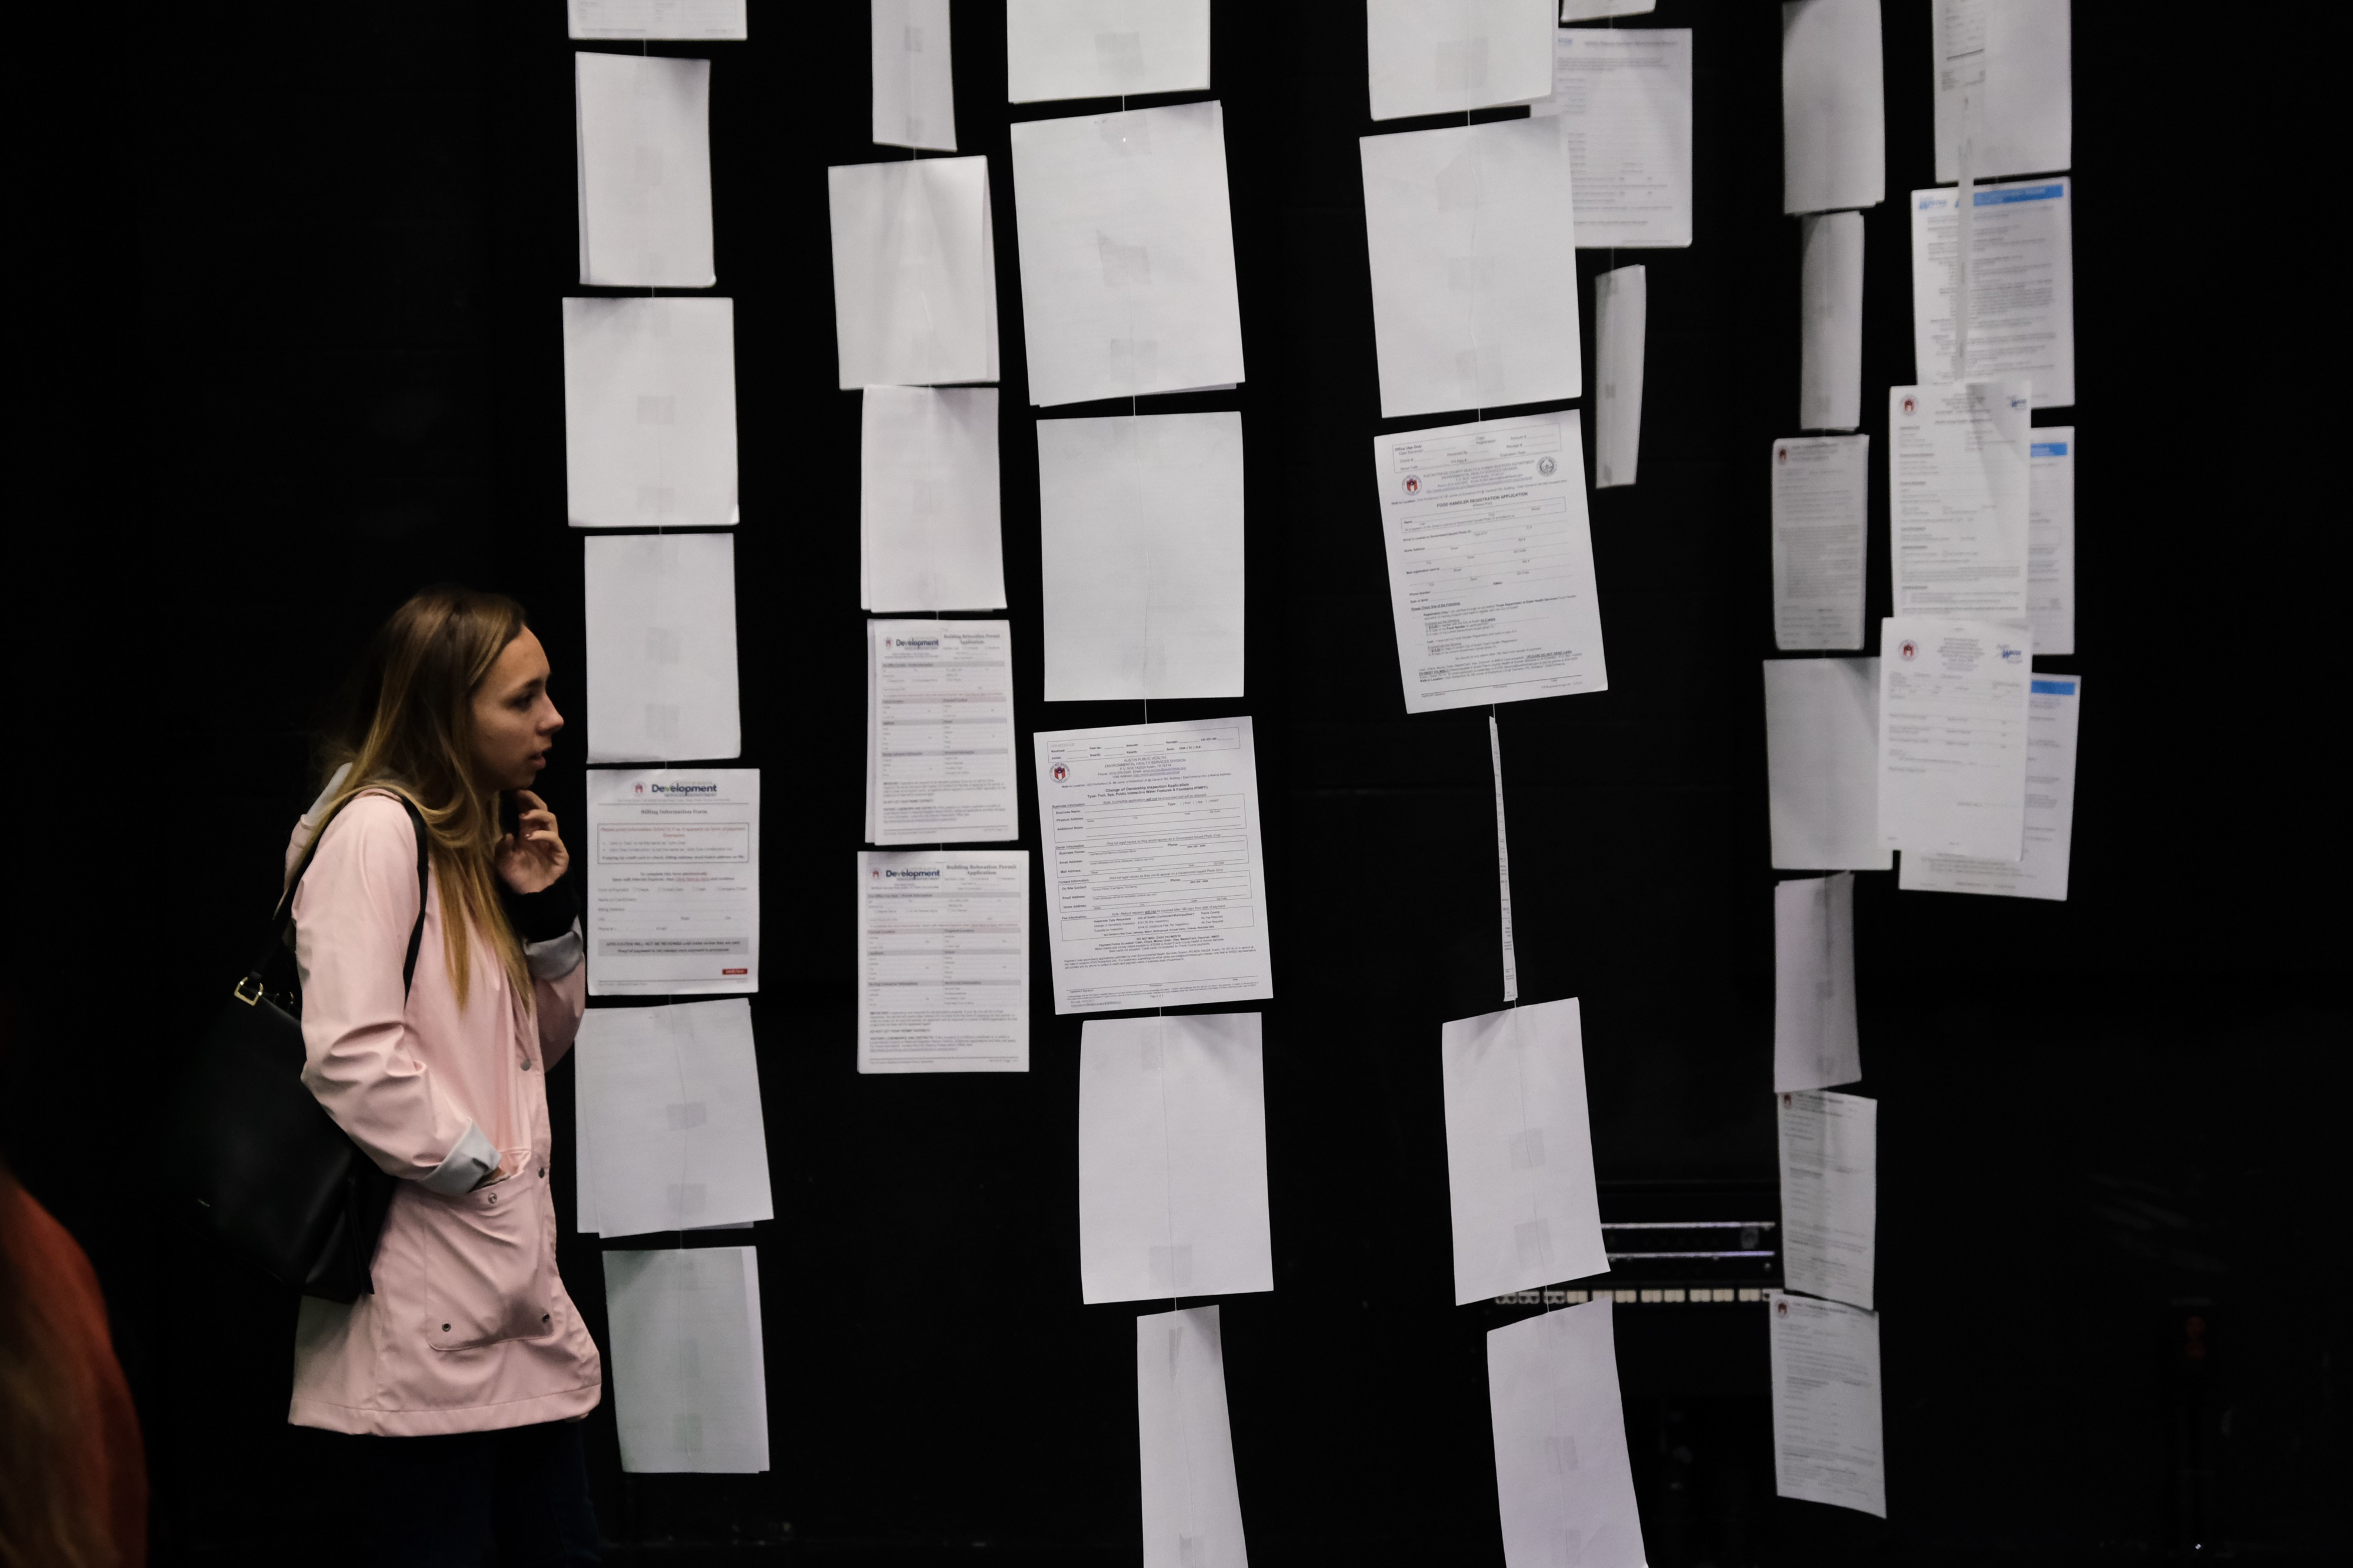 A women in a pink sweater looks at a row of forms along the back wall.